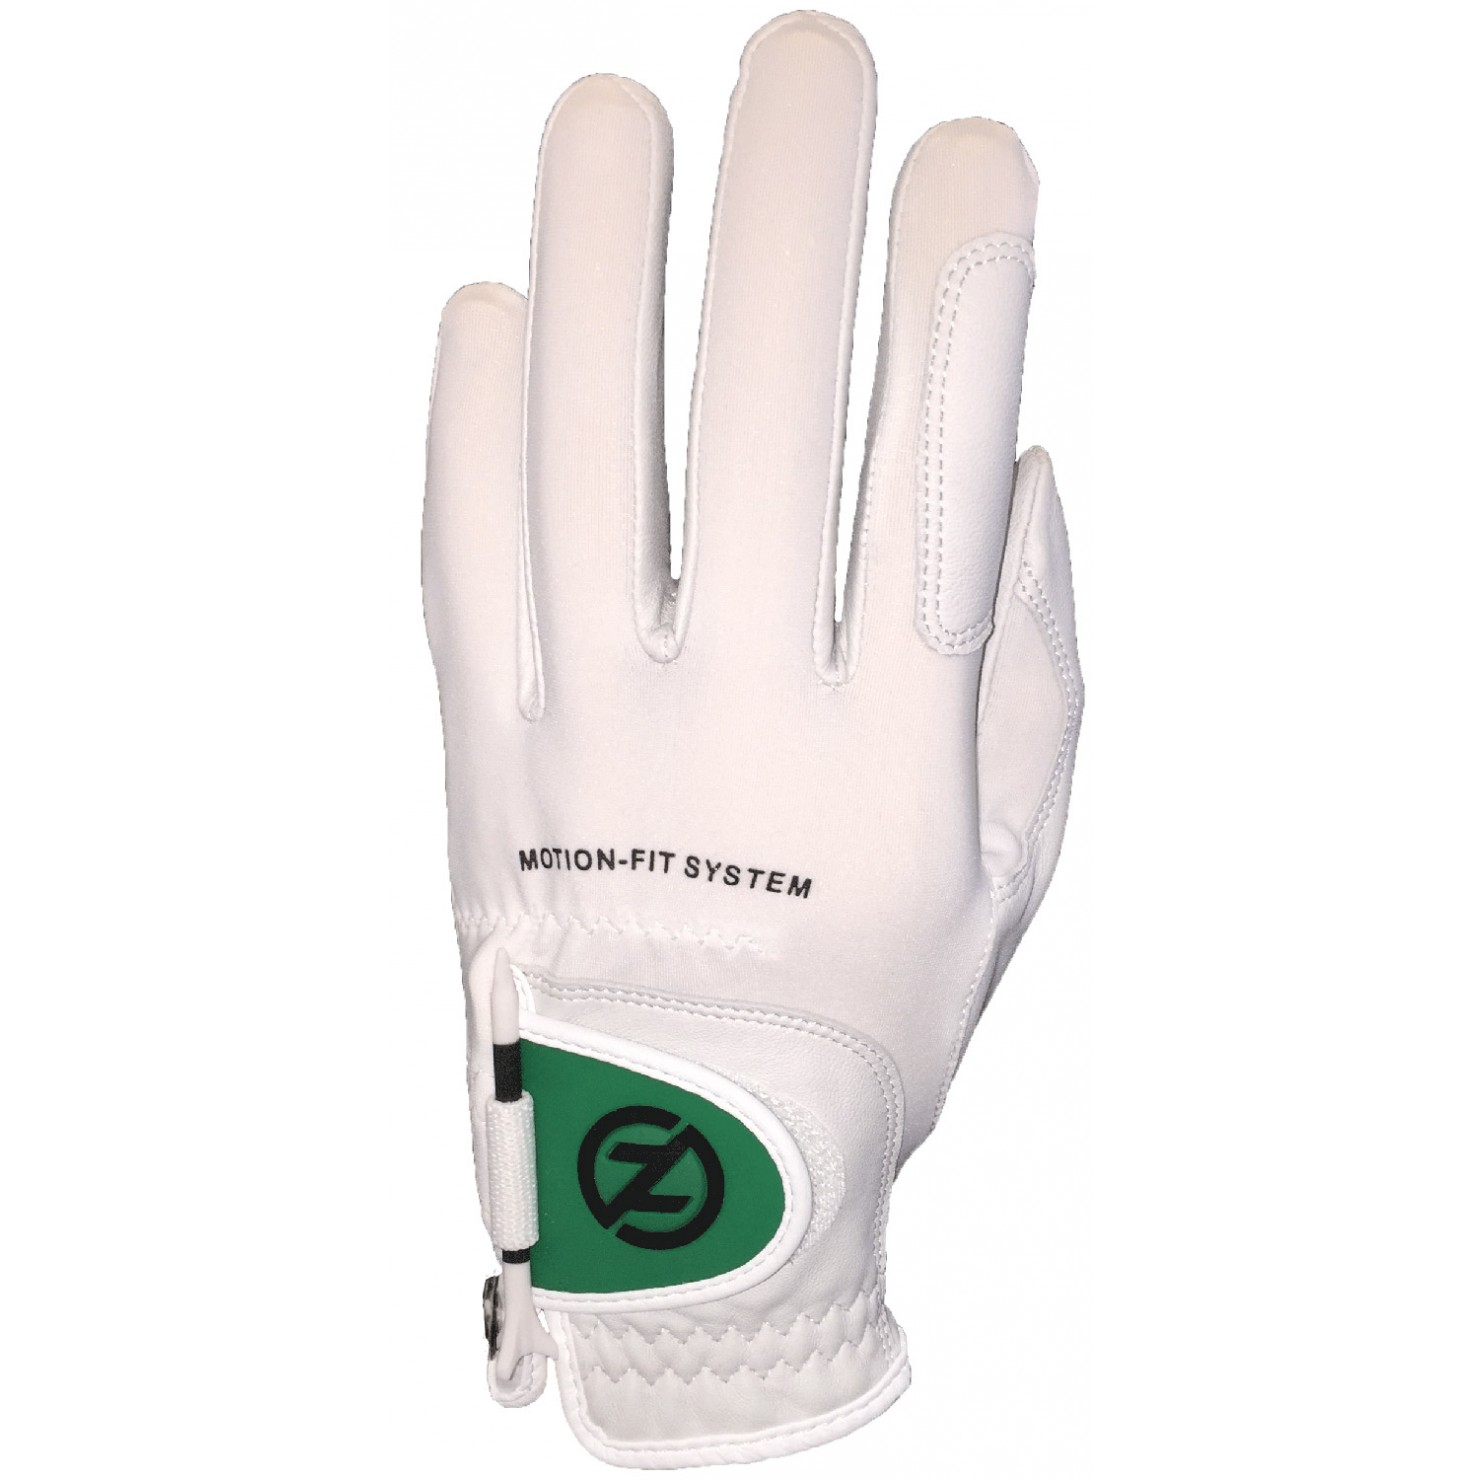 Zero Friction Johnny Miller Motion Fit Left Hand Golf Glove